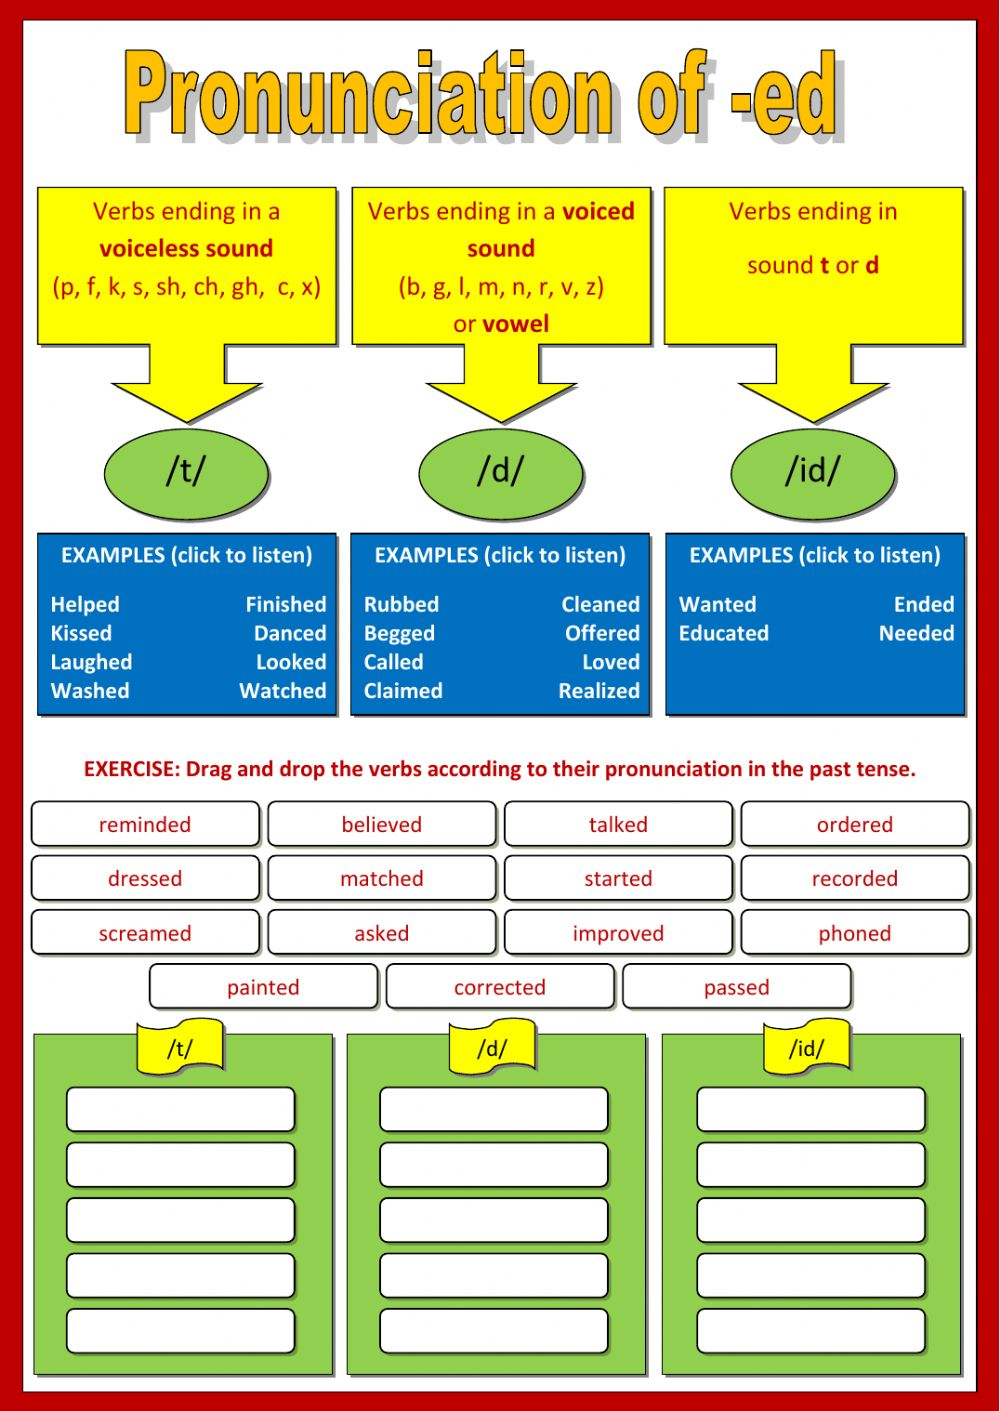 worksheet Esl Pronunciation Worksheets pronunciation of ed interactive worksheet text